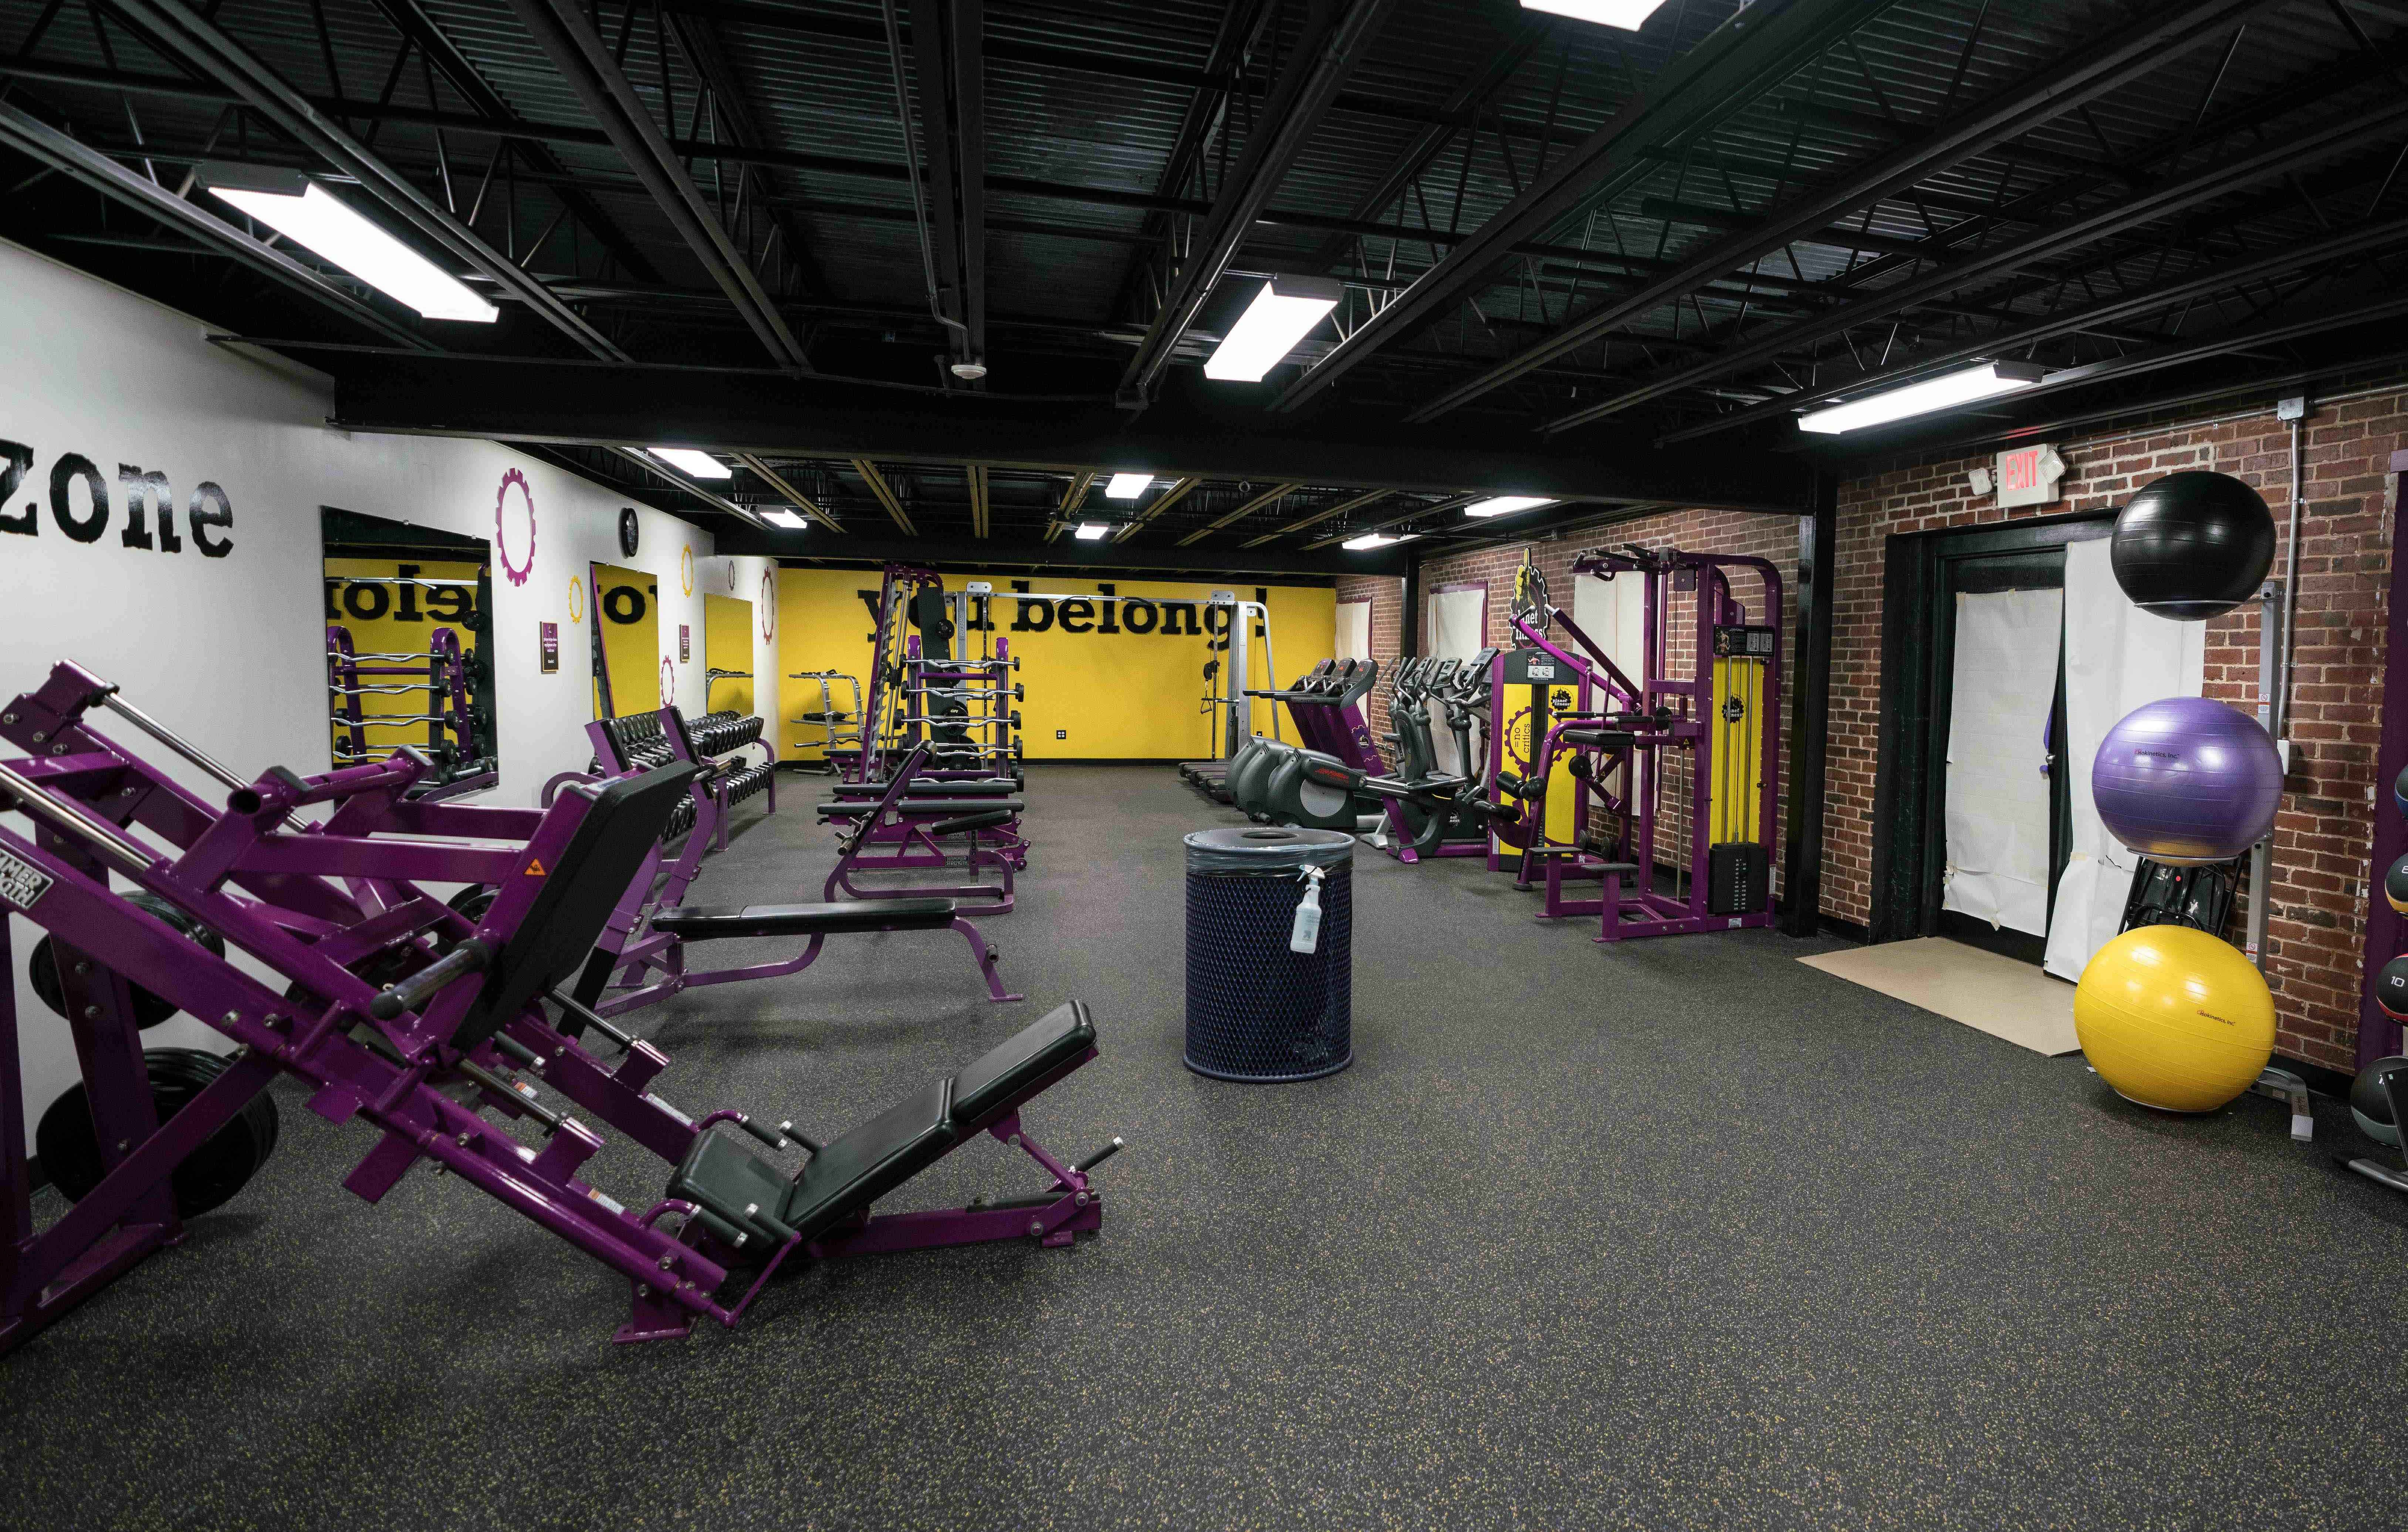 Local planet fitness donates workout space to boys & girls club